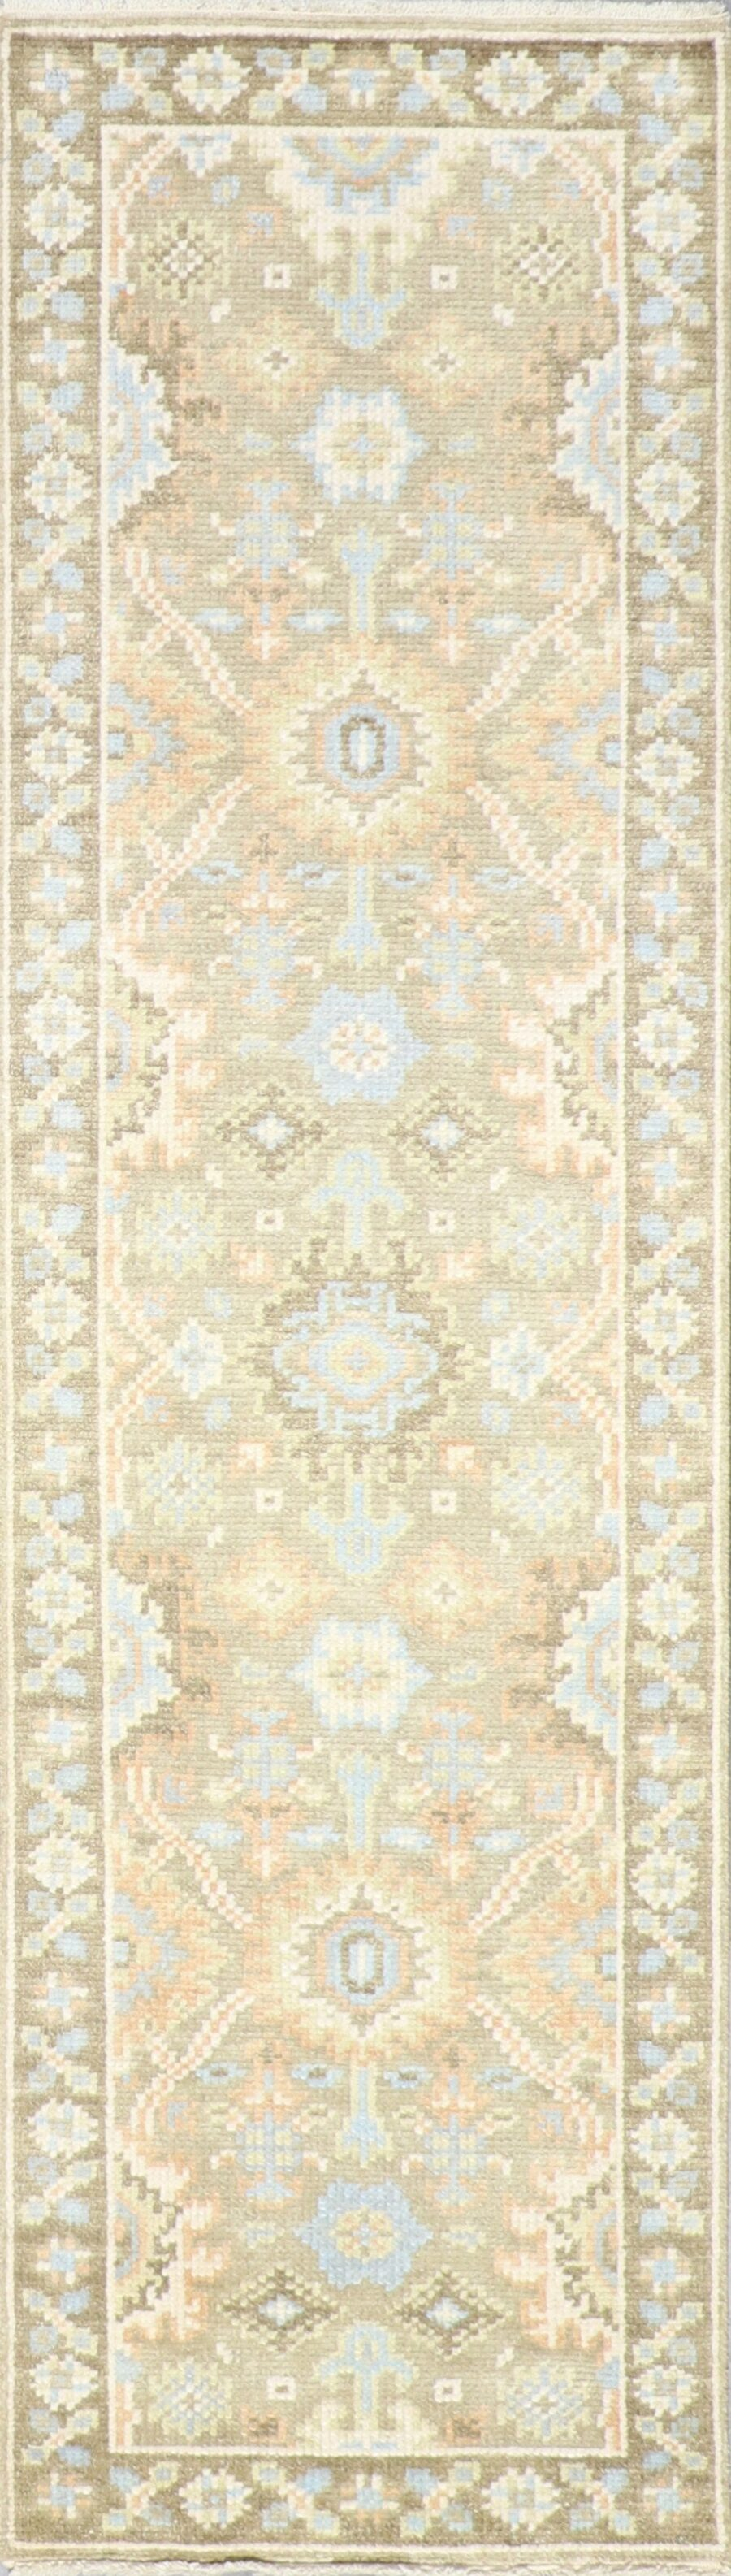 """2'7""""x10' Decorative Green Wool Hand-Knotted Rug - Direct Rug Import   Rugs in Chicago, Indiana,South Bend,Granger"""